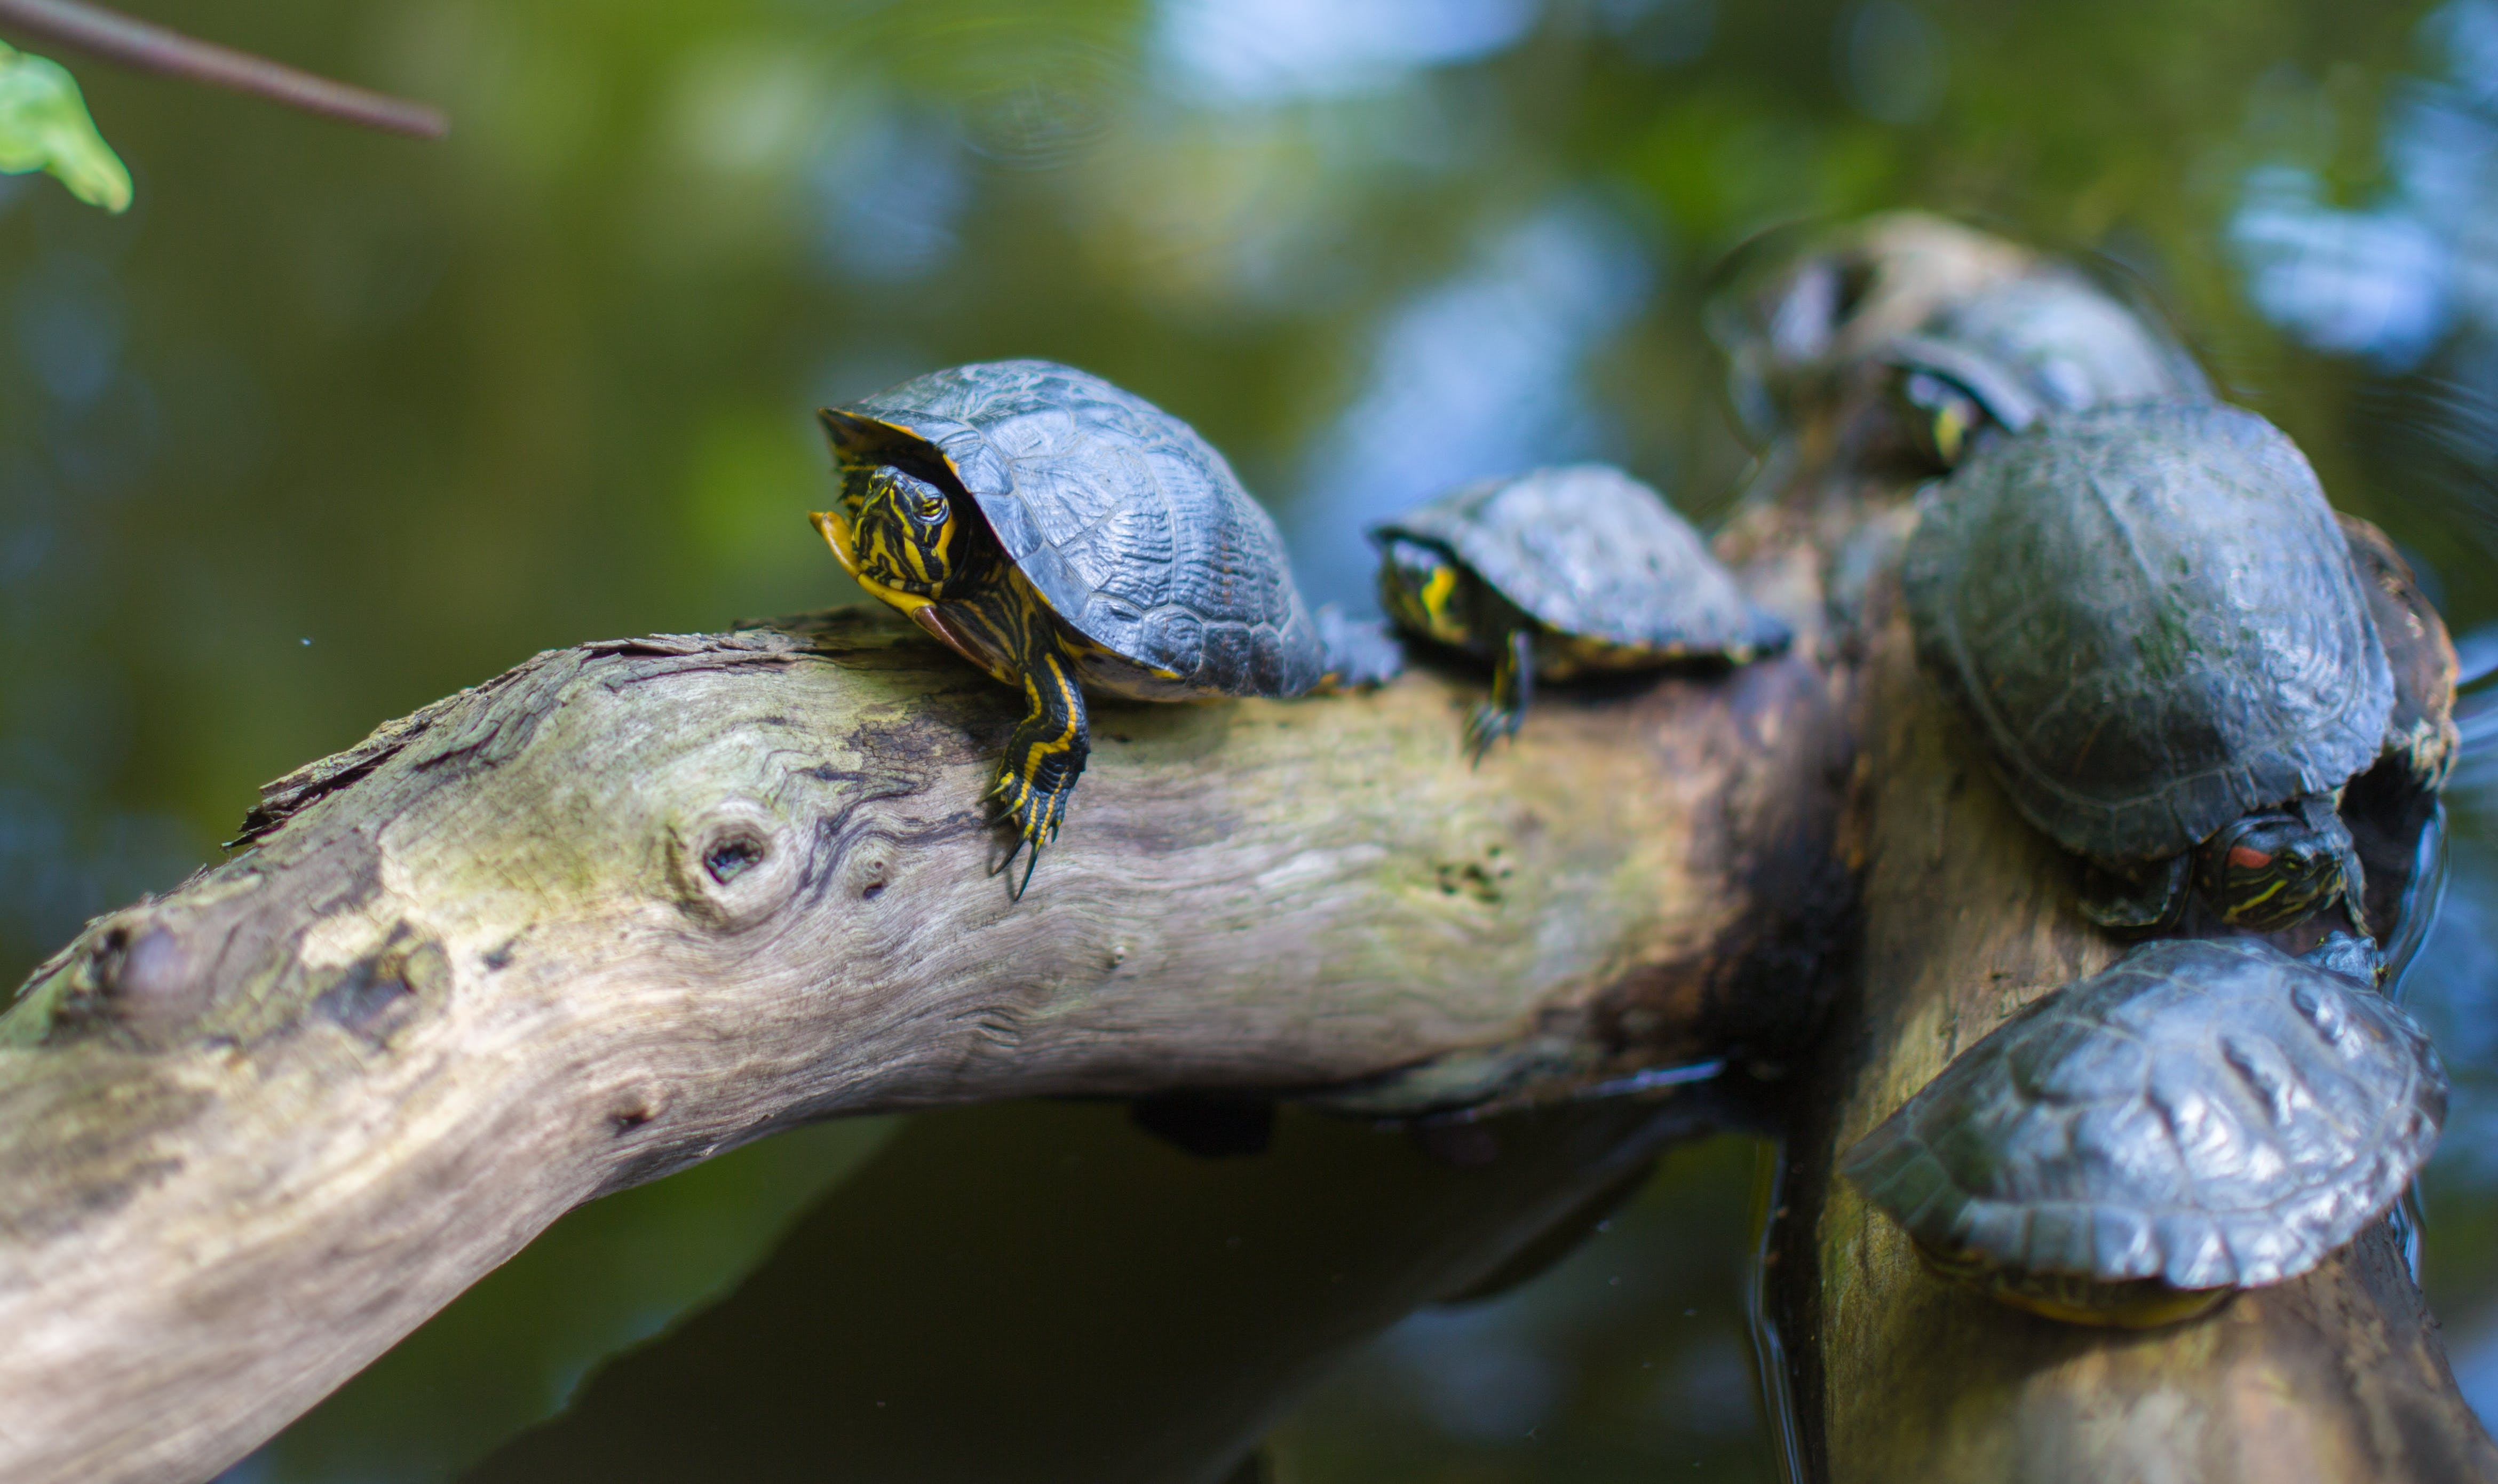 Gray Turtles Crawling on Tree Brunch